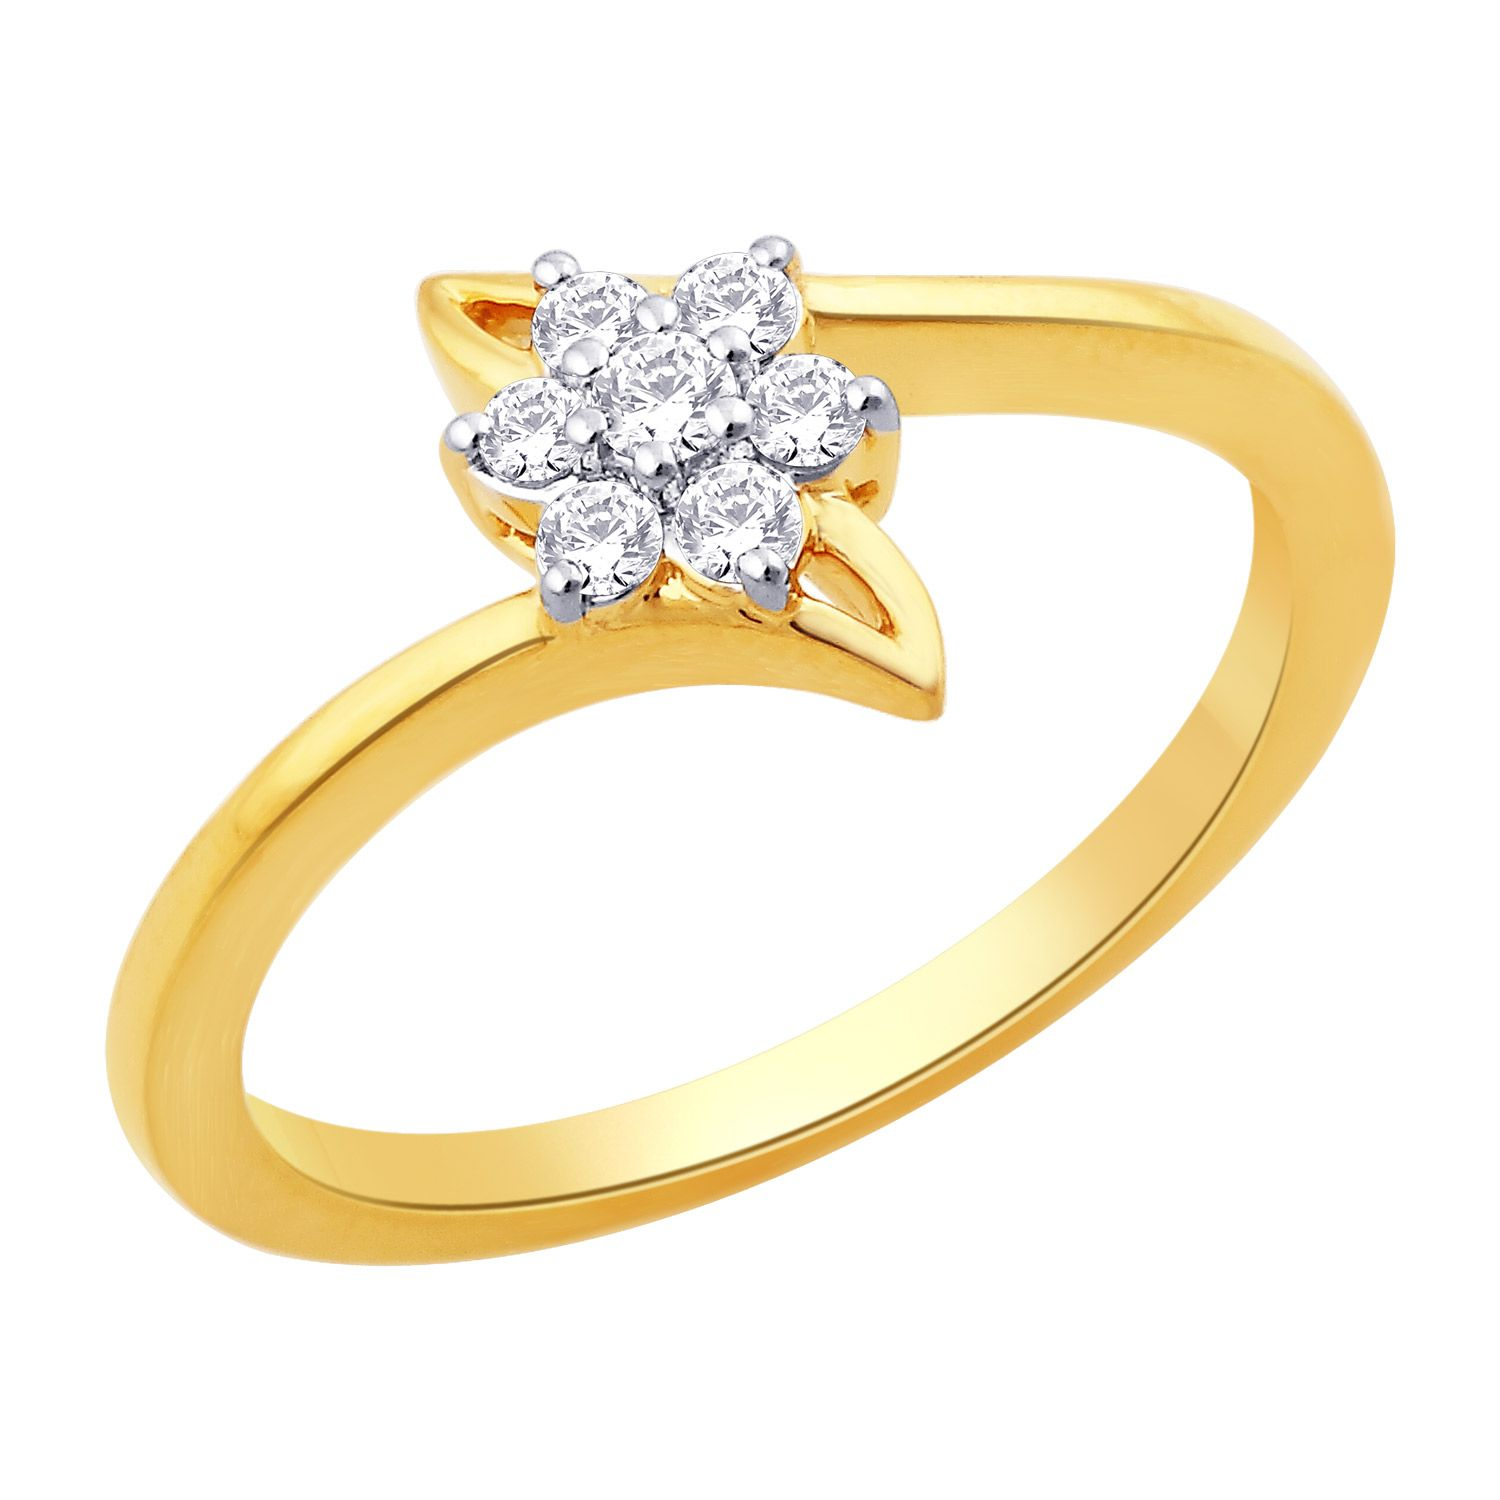 rings sterling ziveg collection jewellery with made india online category swarovski zirconia gold silver ring